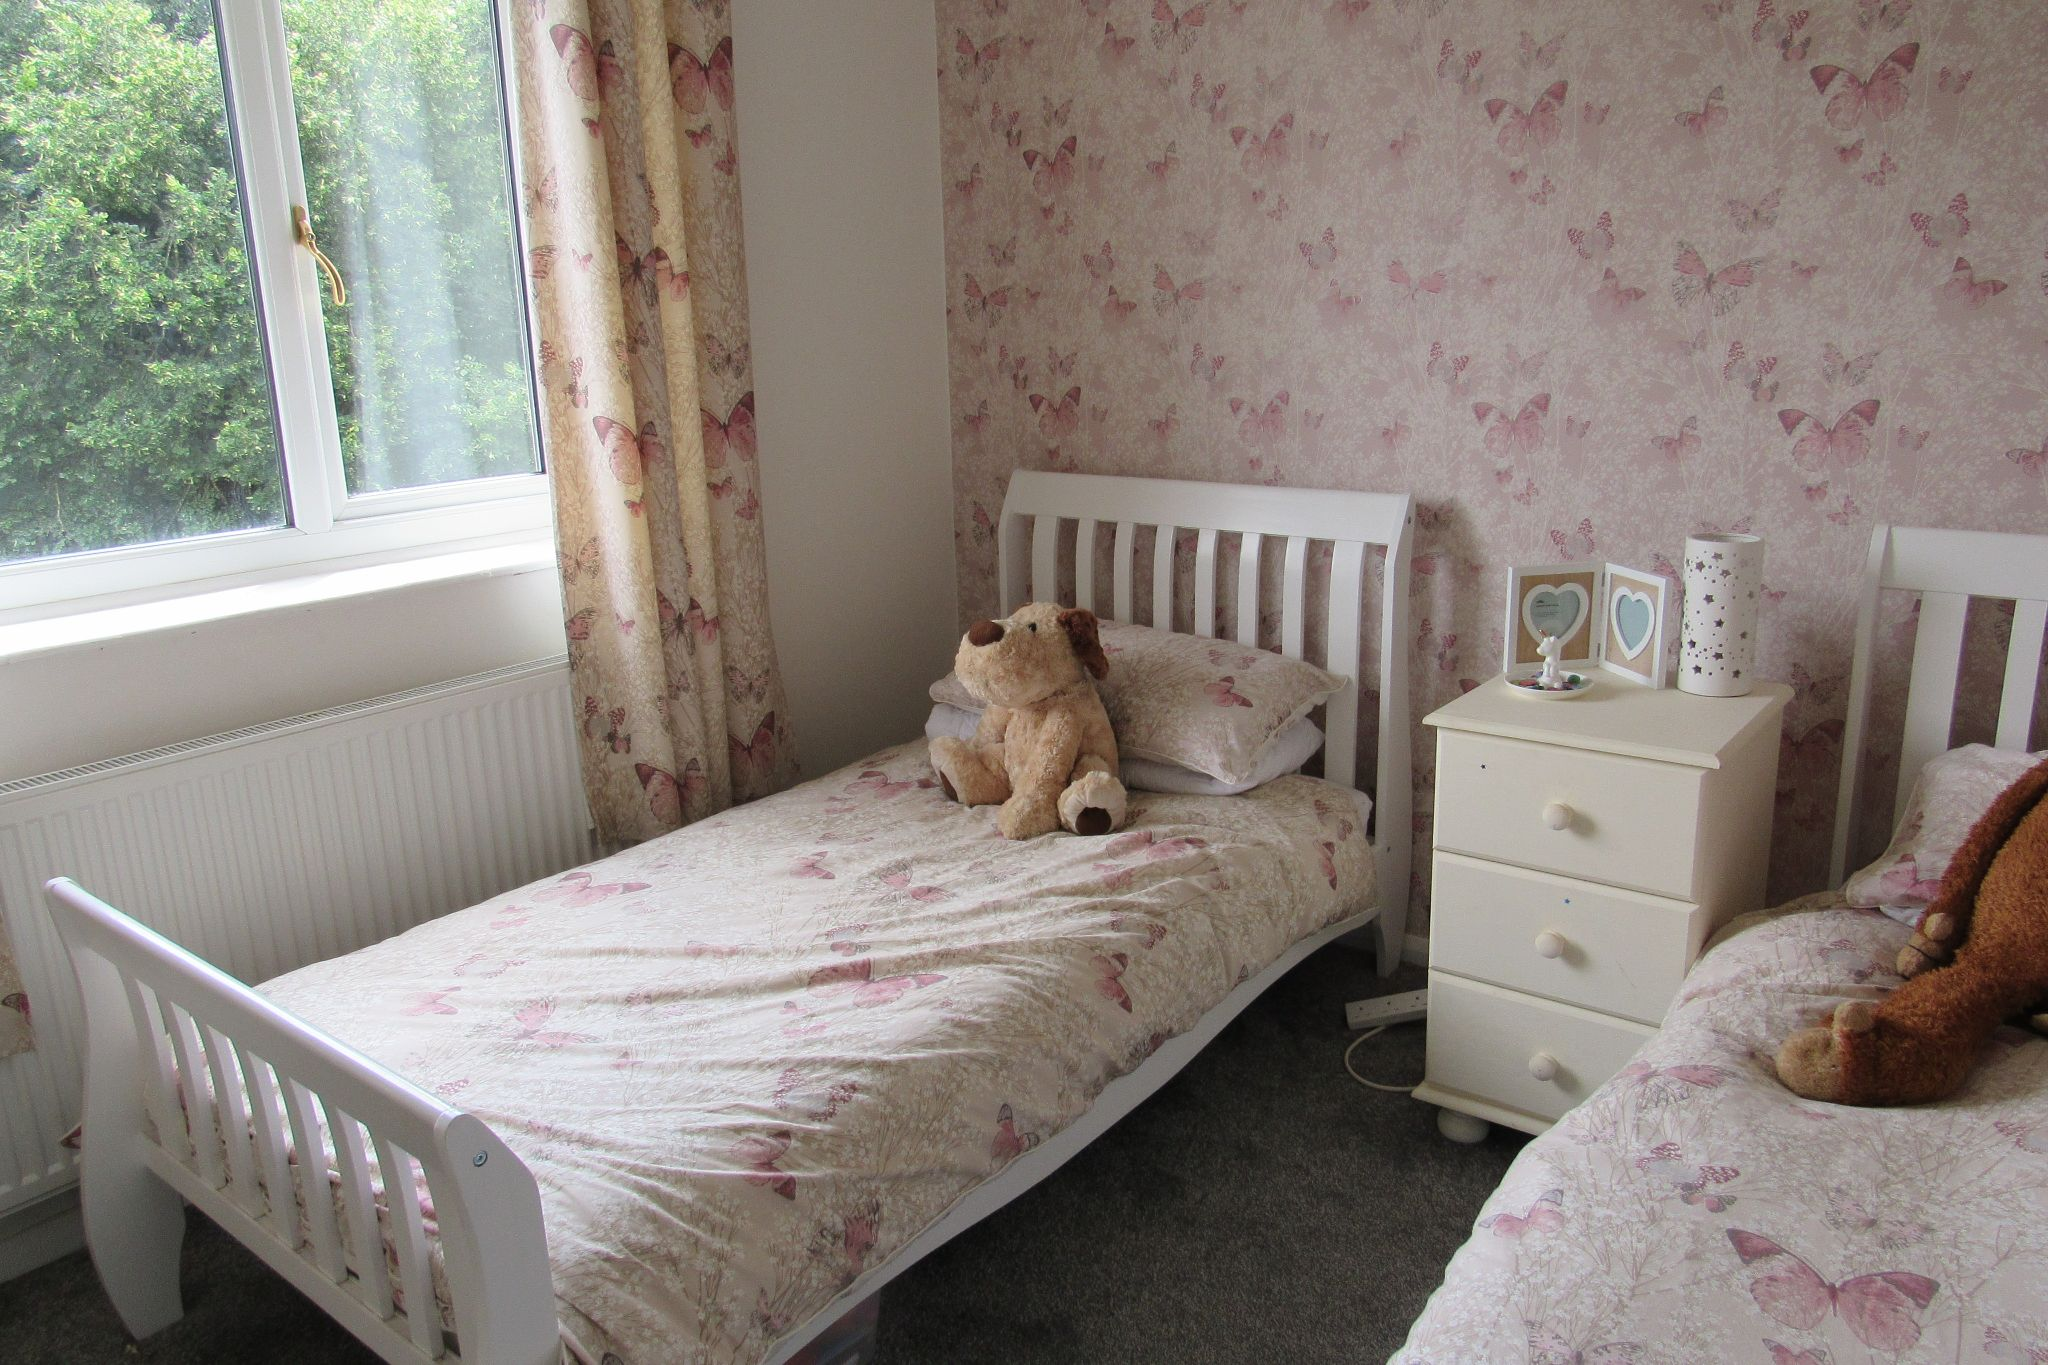 3 bedroom semi-detached house SSTC in Wythenshawe - Photograph 11.